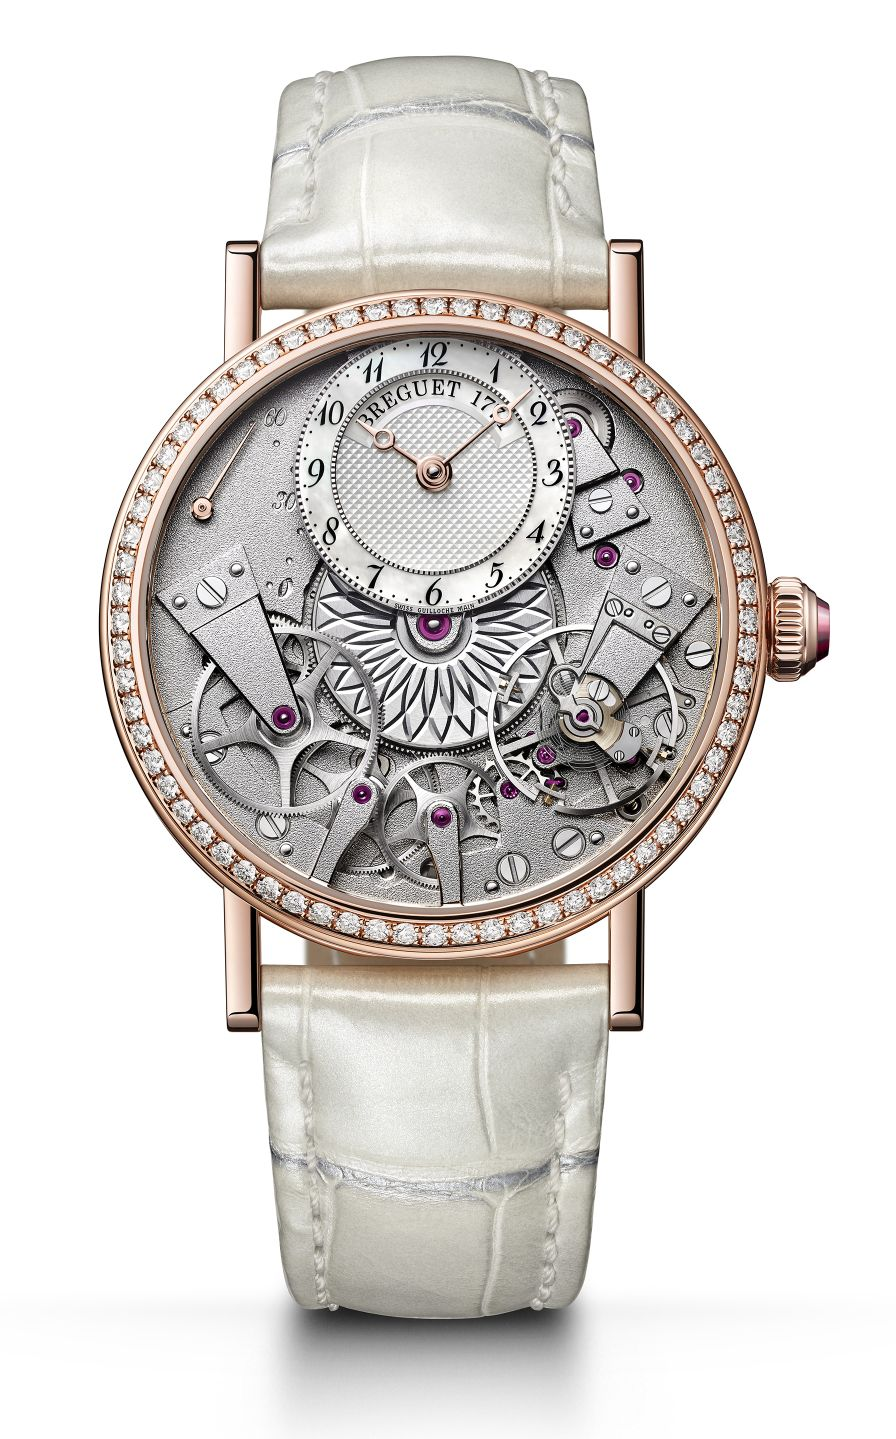 Breguet Tradition Dame 7038 , Breguet Tradition 7038, Breguet Tradition Ladies 7038